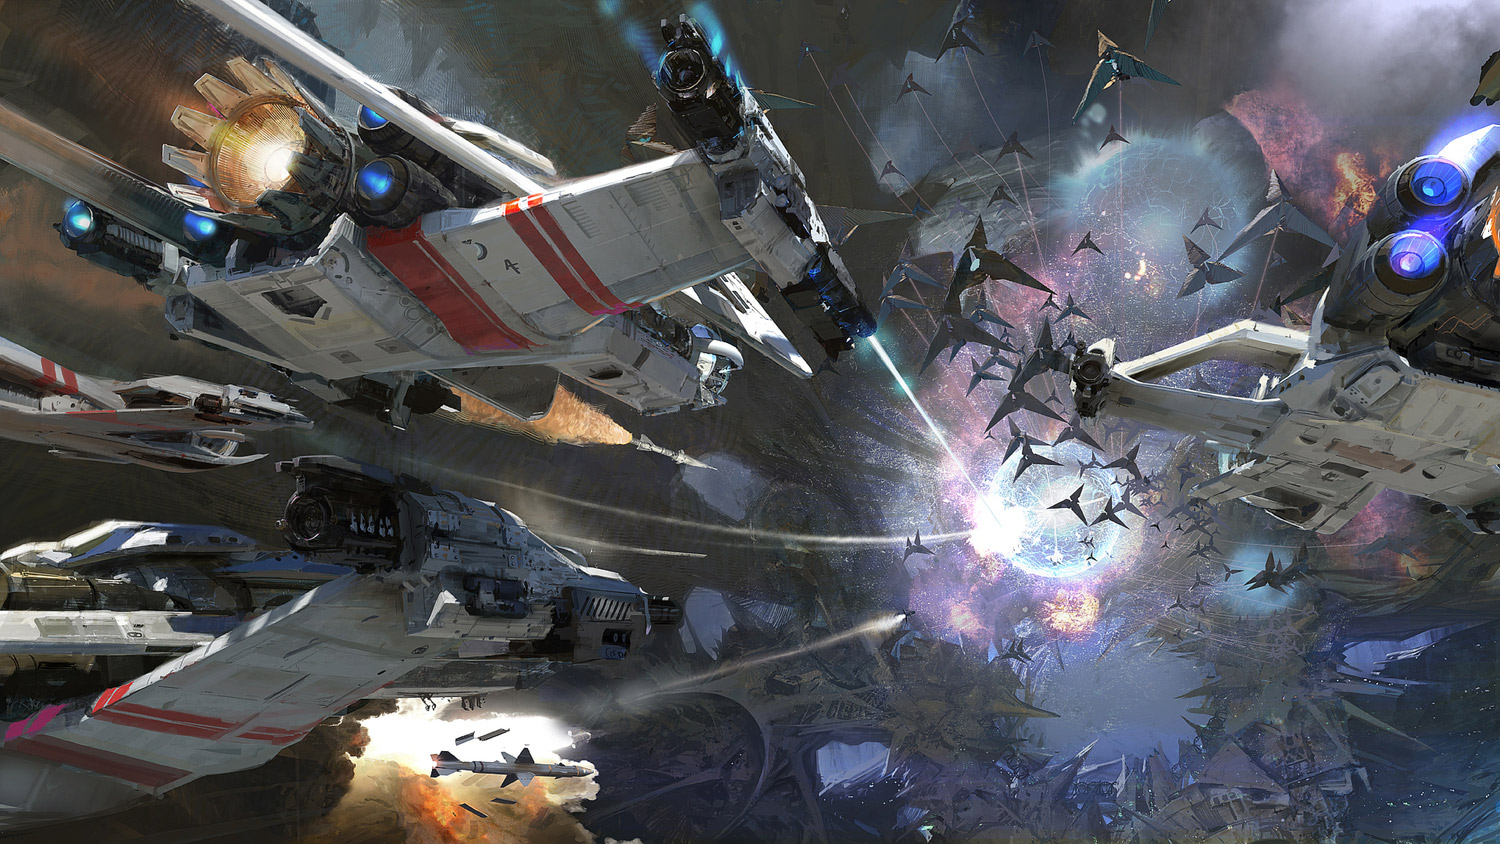 Pics photos wallpapers optical illusion desktop backgrounds optical - Concept Ships Spaceships By Craig Mullins